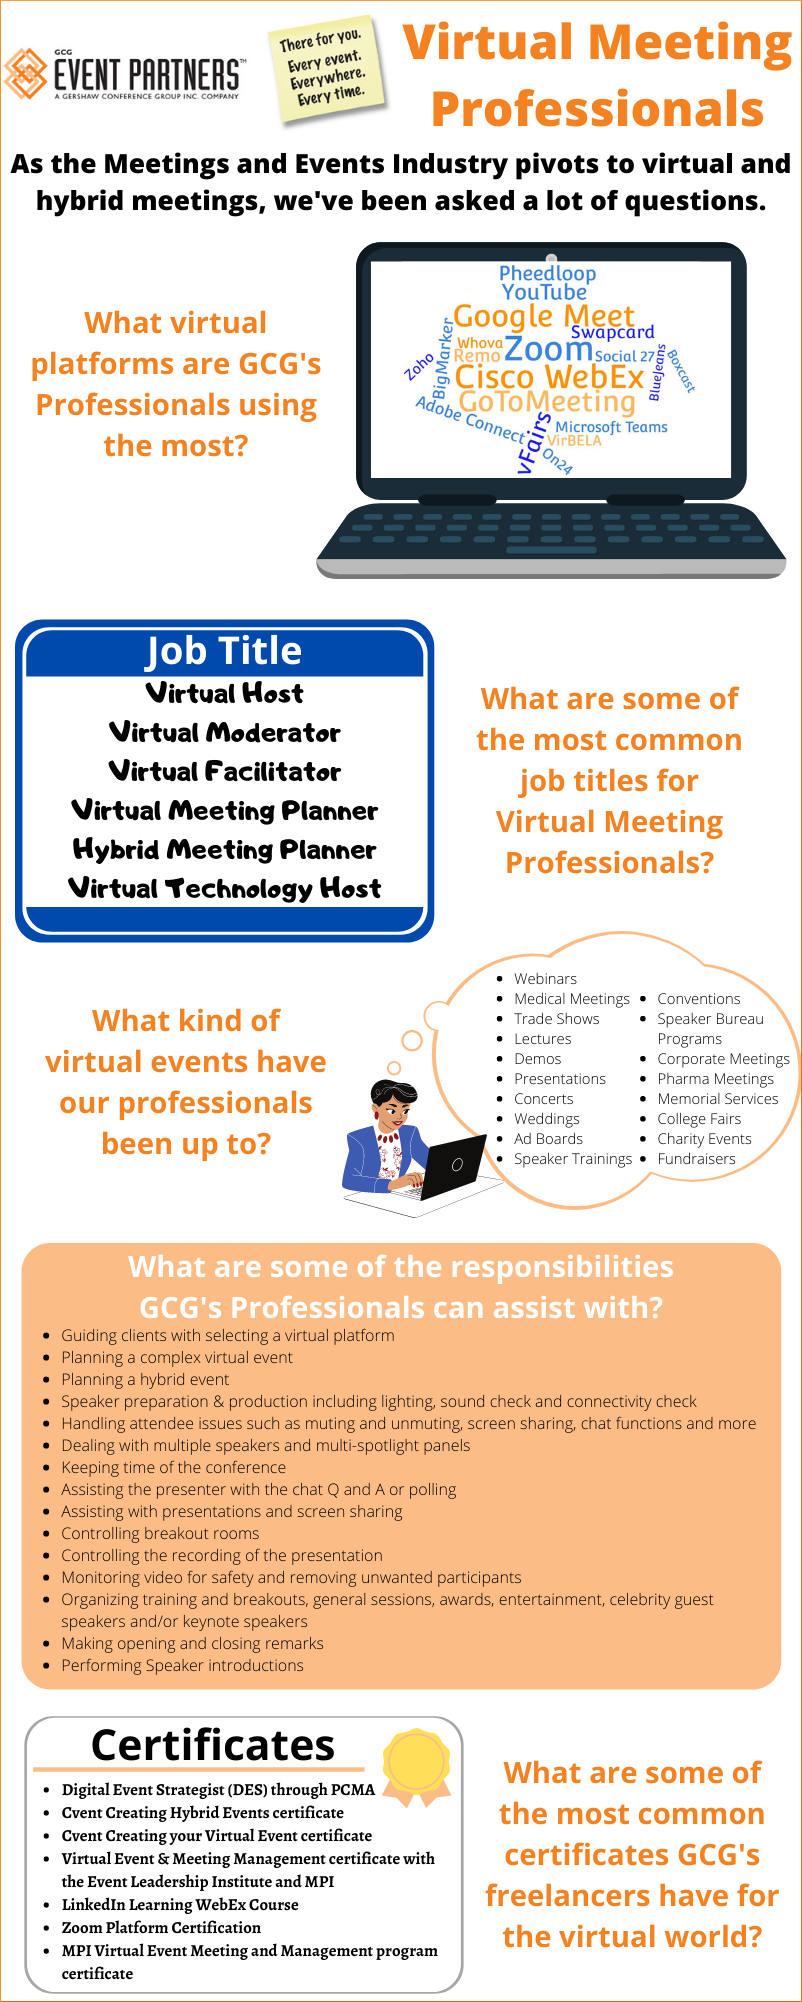 As the meetings and events industry pivots to virtual and hybrid meetings, we've been asked a lot of questions.  What virtual platforms are GCG's Professionals using the most?  Zoom, Webex, Google Meet, Go To Meeting, Bluejeans, On24. What are some of the most common job titles for Virtual Meeting Professionals? Virtual Host, Virtual Moderator, Virtual Facilitator, Virtual Meeting Planner, Hybrid Meeting Planner, Virtual Technology Host. What kind of virtual events have our professionals been up to? Webinars, Medical Meetings, Trade Shows, Lectures, Demos, Presentations, Concerts, Weddings, Ad Boards, Speaker Training, Conventions, Speaker Bureau Programs, Corporate Meetings, Pharma Meetings, Memorial Services, Collage Fairs, Charity Events, Fundraisers. What are some of the responsibilities GCG's Professionals can assist with? Guiding clients with selecting a virtual platform, Planning a complex virtual event, Planning a hybrid event, Speaker preparation & production including lighting, sound check and connectivity check, Handling attendee issues such as muting and unmuting, screen sharing, chat functions and more, Dealing with multiple speakers and multi-spotlight panels, Keeping time of the conference, Assisting the presenter with the chat Q and A or polling, Assisting with presentations and screen sharing, Controlling breakout rooms, Controlling the recording of the presentation, Monitoring video for safety and removing unwanted participants, Organizing training and breakouts, general sessions, awards, entertainment, celebrity guest speakers and/or keynote speakers, Making opening and closing remarks, Performing Speaker introductions. What are some of the most common certificates GCG's freelancers have for the virtual world? Digital Event Strategist (DES) through PCMA, Cvent Creating Hybrid Events certificate, Cvent Creating your Virtual Event certificate, Virtual Event & Meeting Management certificate with the Event Leadership Institute and MPI, LinkedIn Learning WebEx Course, Zoom Platform Certification, MPI Virtual Event Meeting and Management program certificate